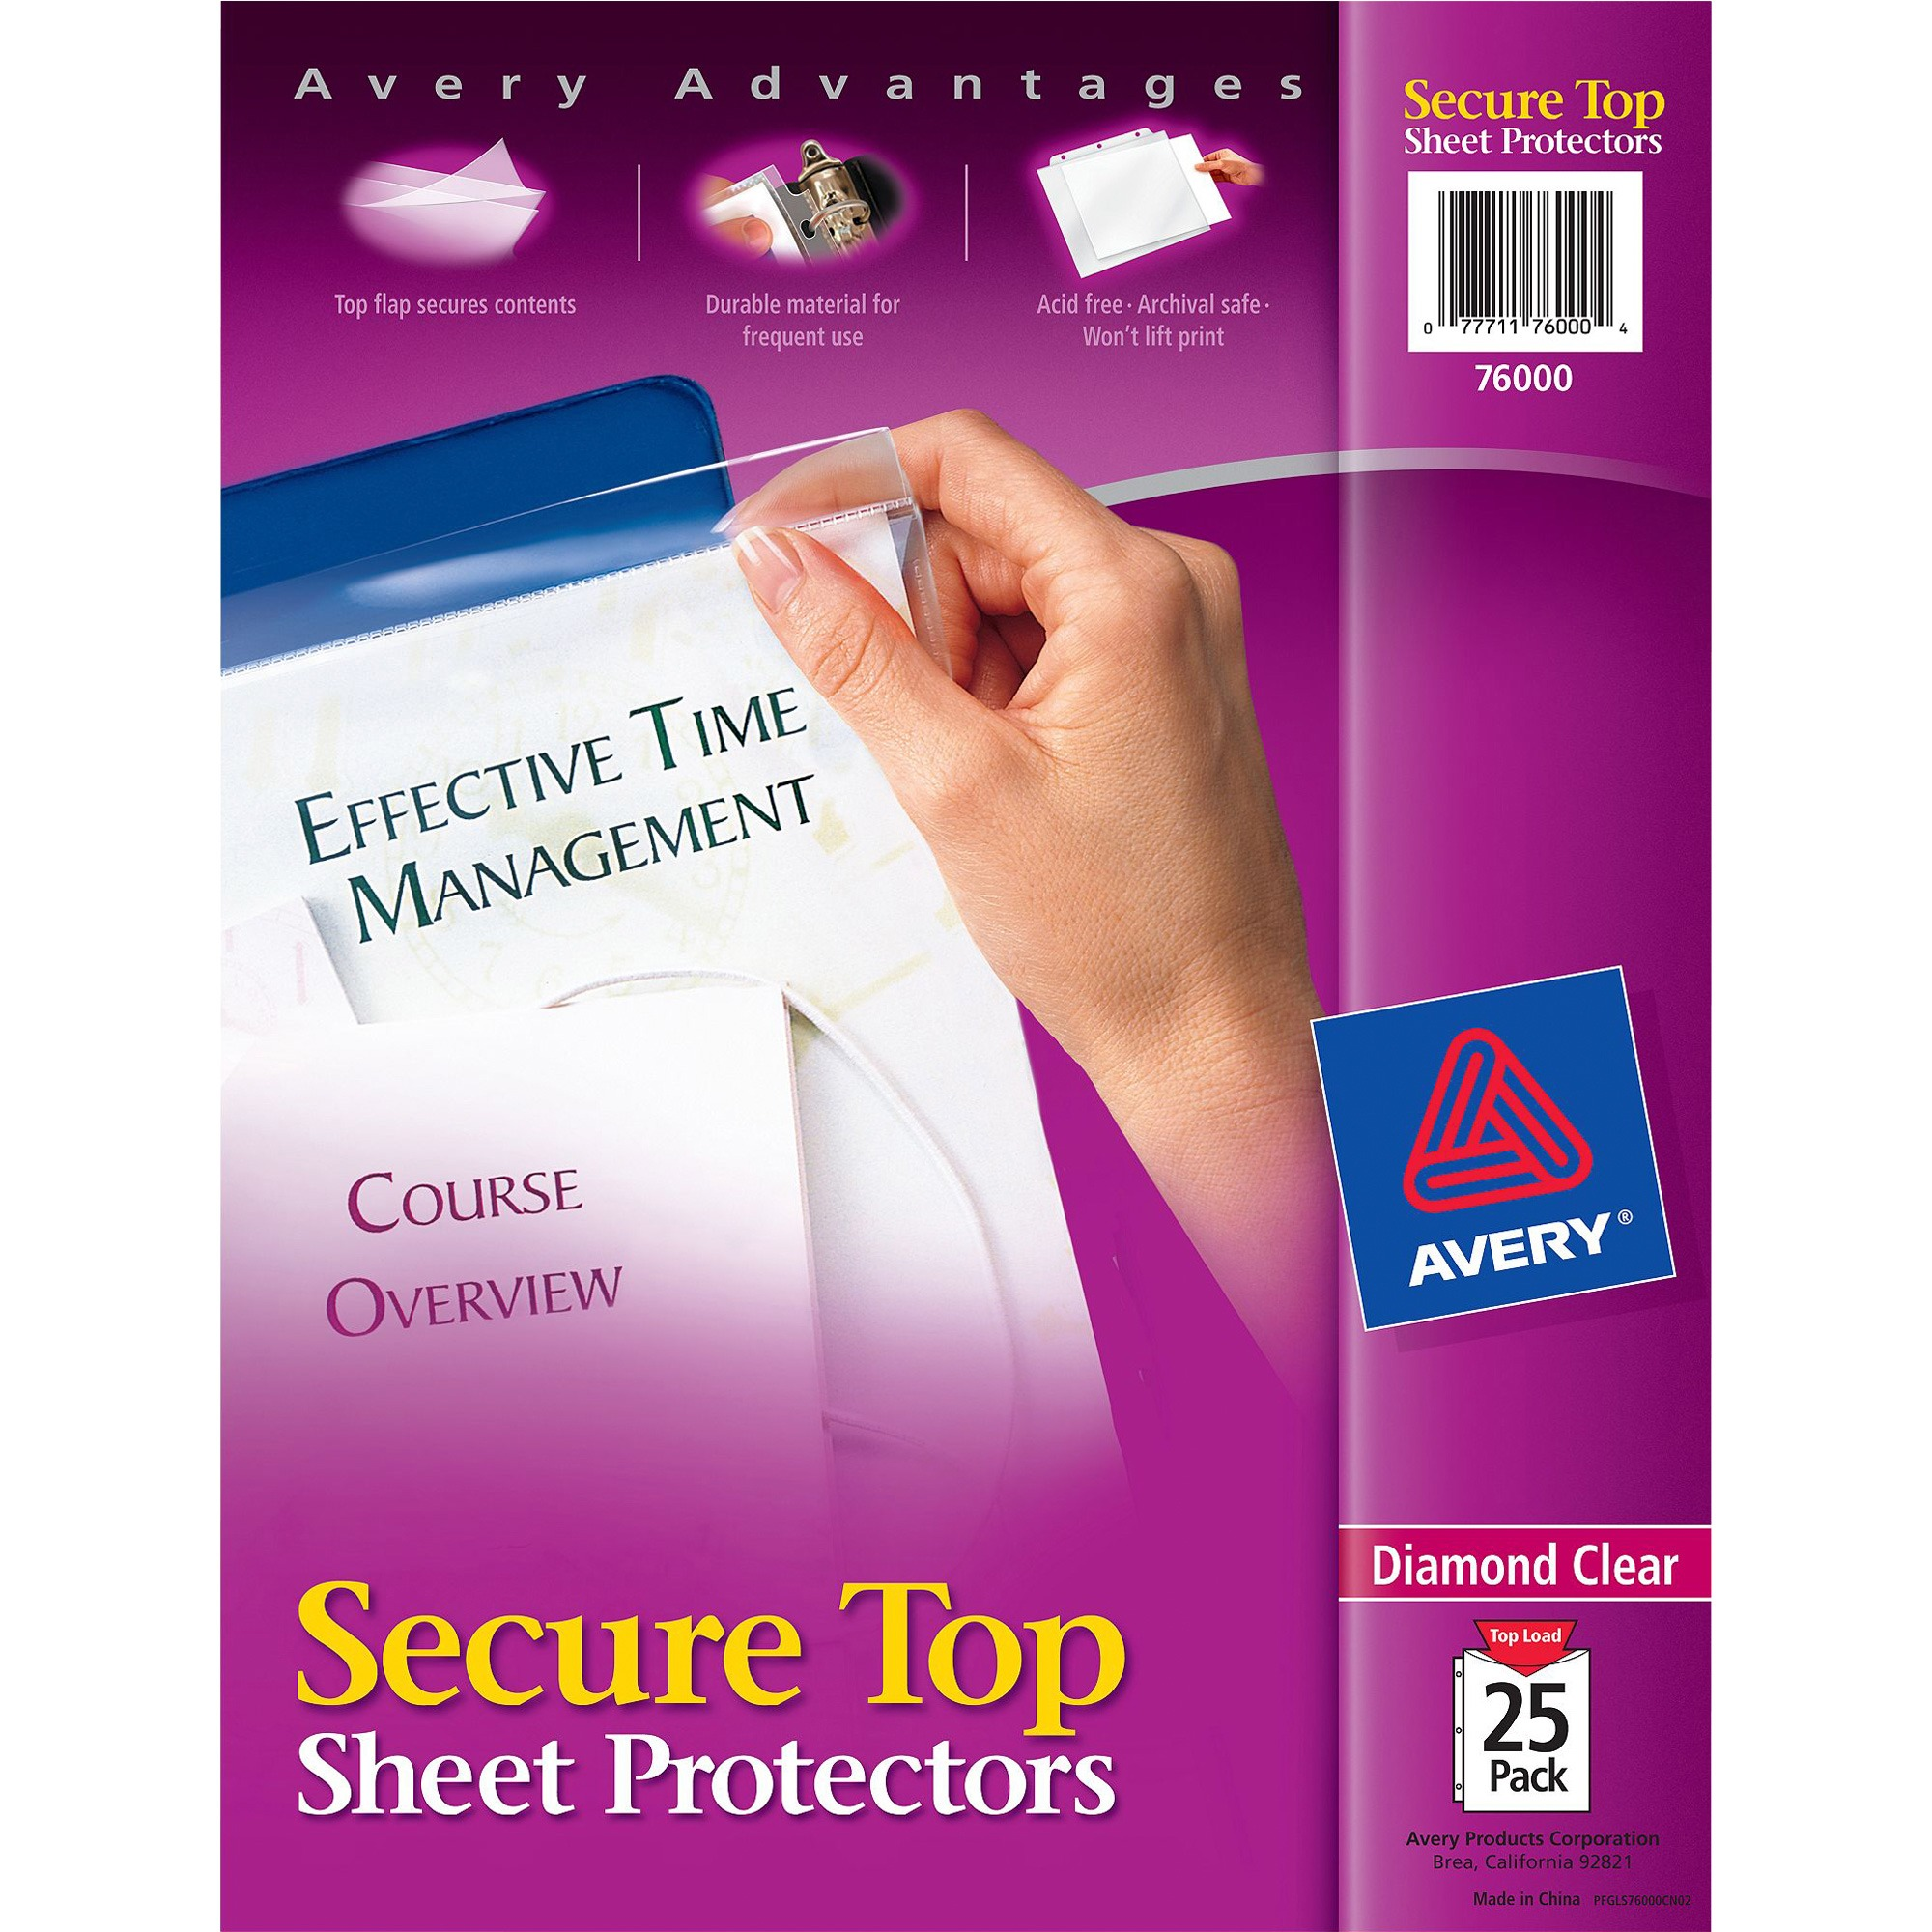 Avery(R) Diamond Clear Secure Top⢠Sheet Protectors, 25 Protectors (76000)